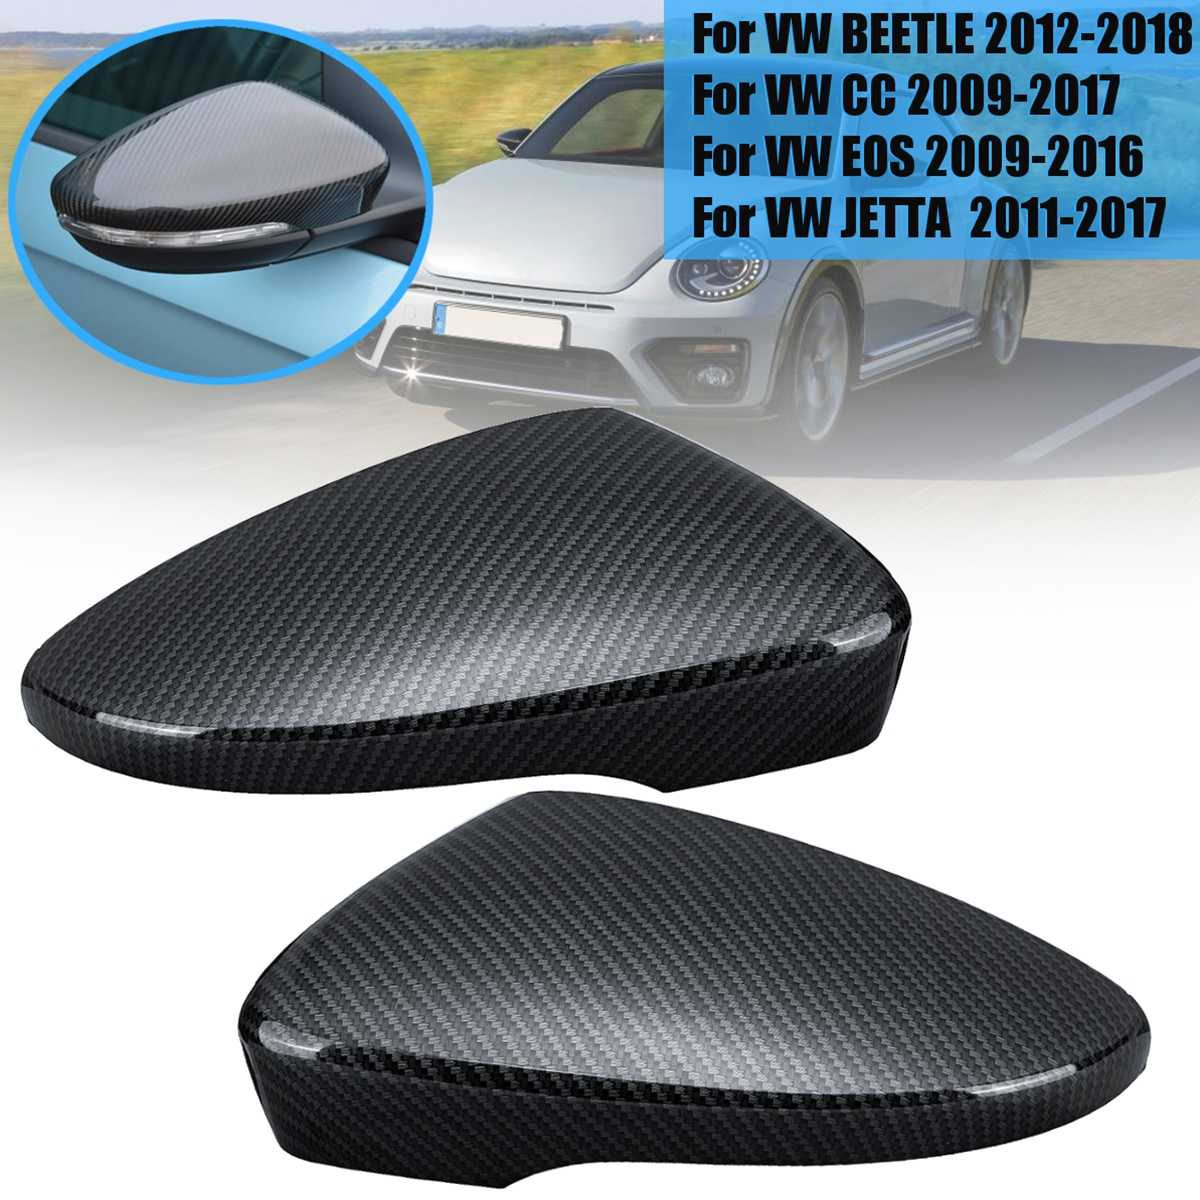 Car Exterior Parts Pair Carbon Black Wing Door Rearview Mirror Cover For VW Passat Scirocco Beetle